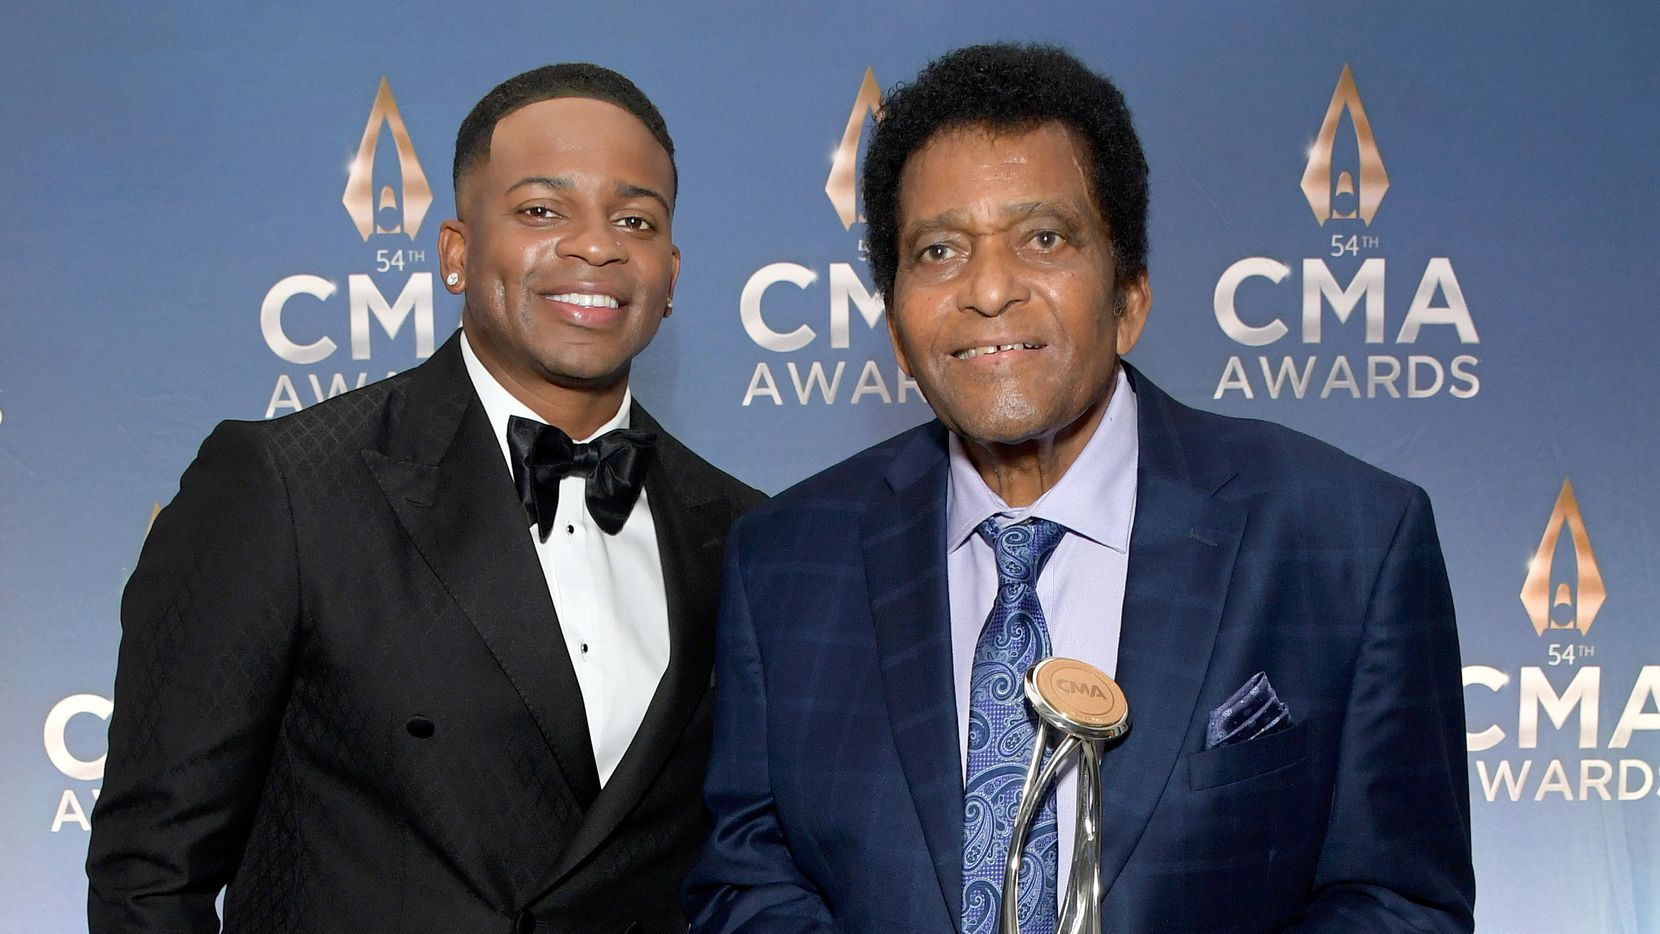 Charley Pride, right, holds his lifetime achievement award Wednesday alongside country singer Jimmie Allen at the CMA Awards at the Music City Center in Nashville, Tenn.